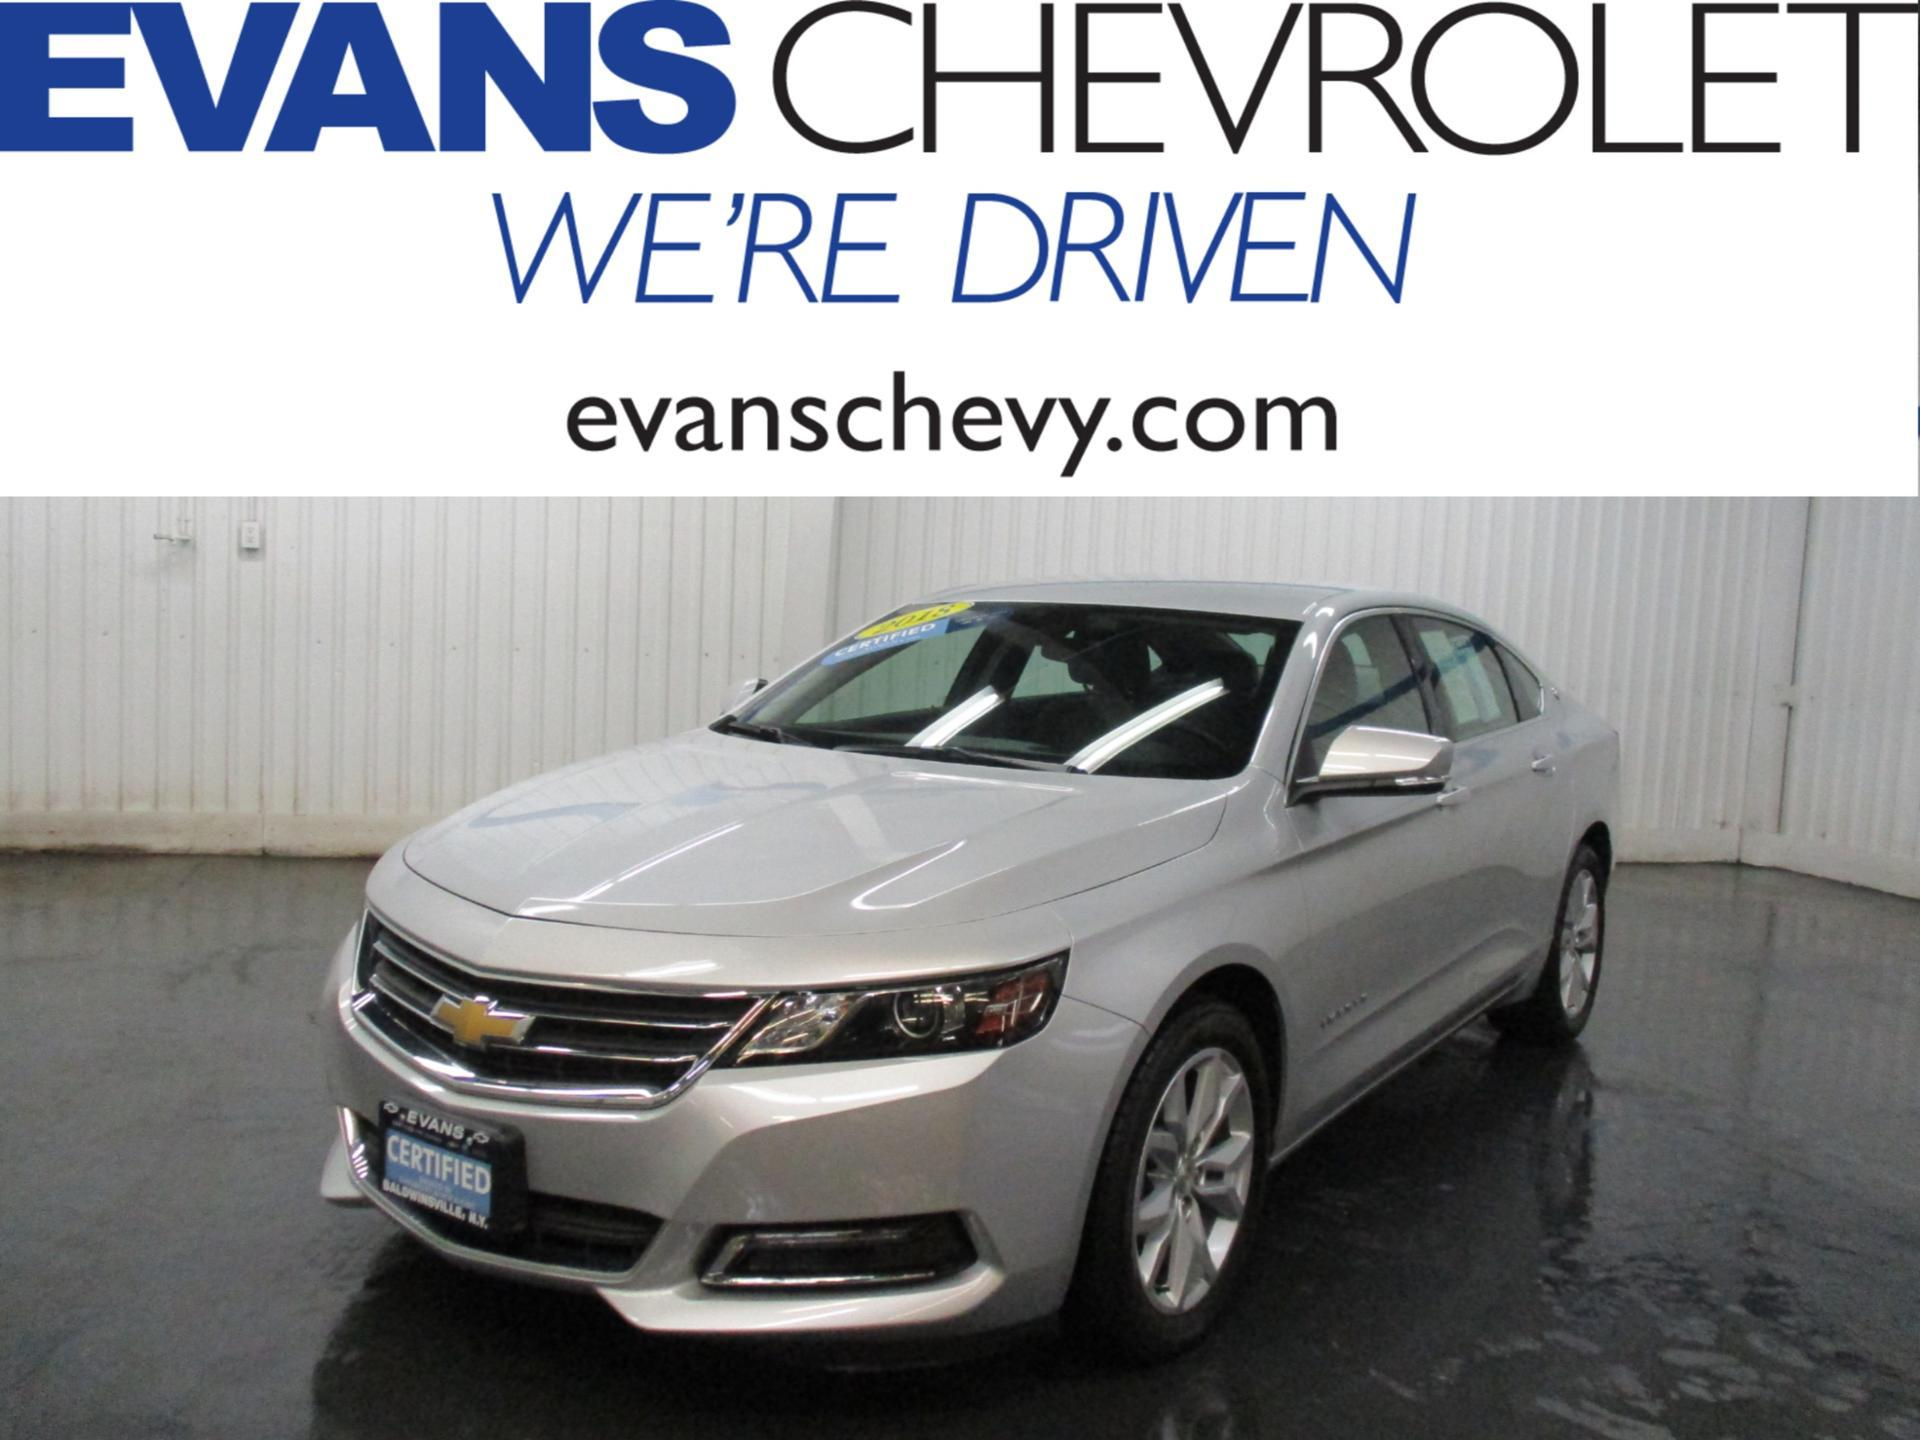 used cars syracuse ny best of baldwinsville used chevrolet impala vehicles for sale near. Black Bedroom Furniture Sets. Home Design Ideas